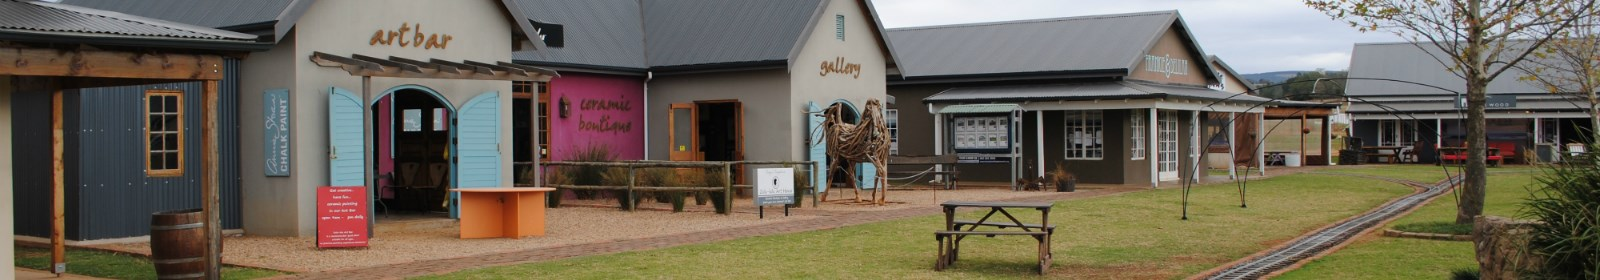 KZN Midlands area and property guide